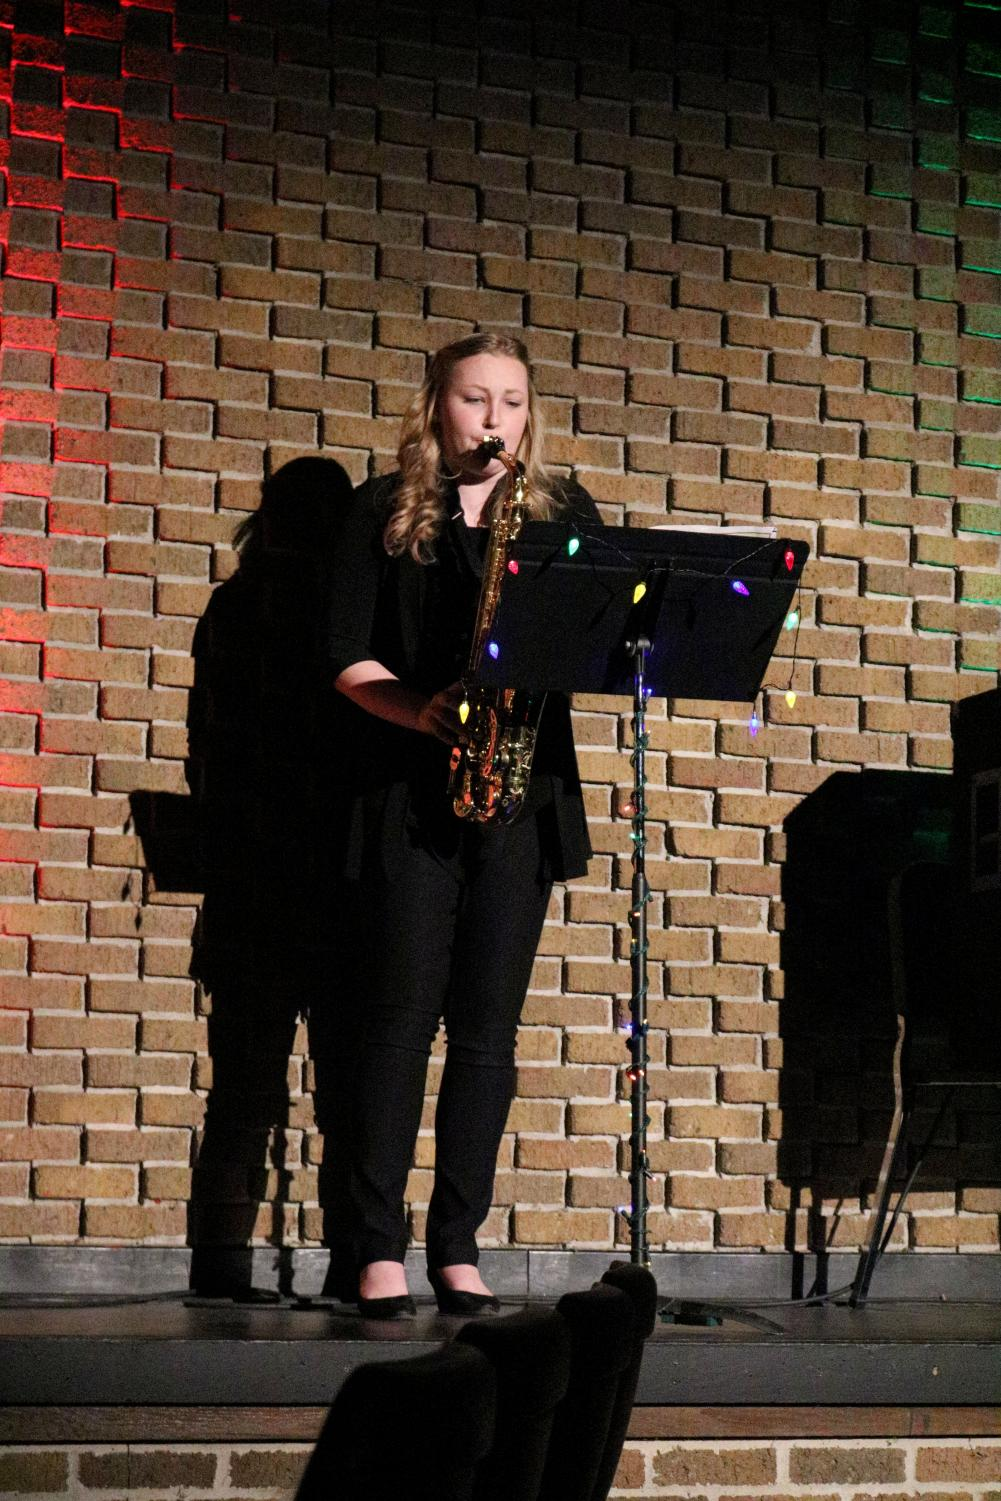 Playing the saxophone, senior Reese Strawsburg performs a solo. On Dec. 17, the Jazz Band played in front of an audience at their concert.